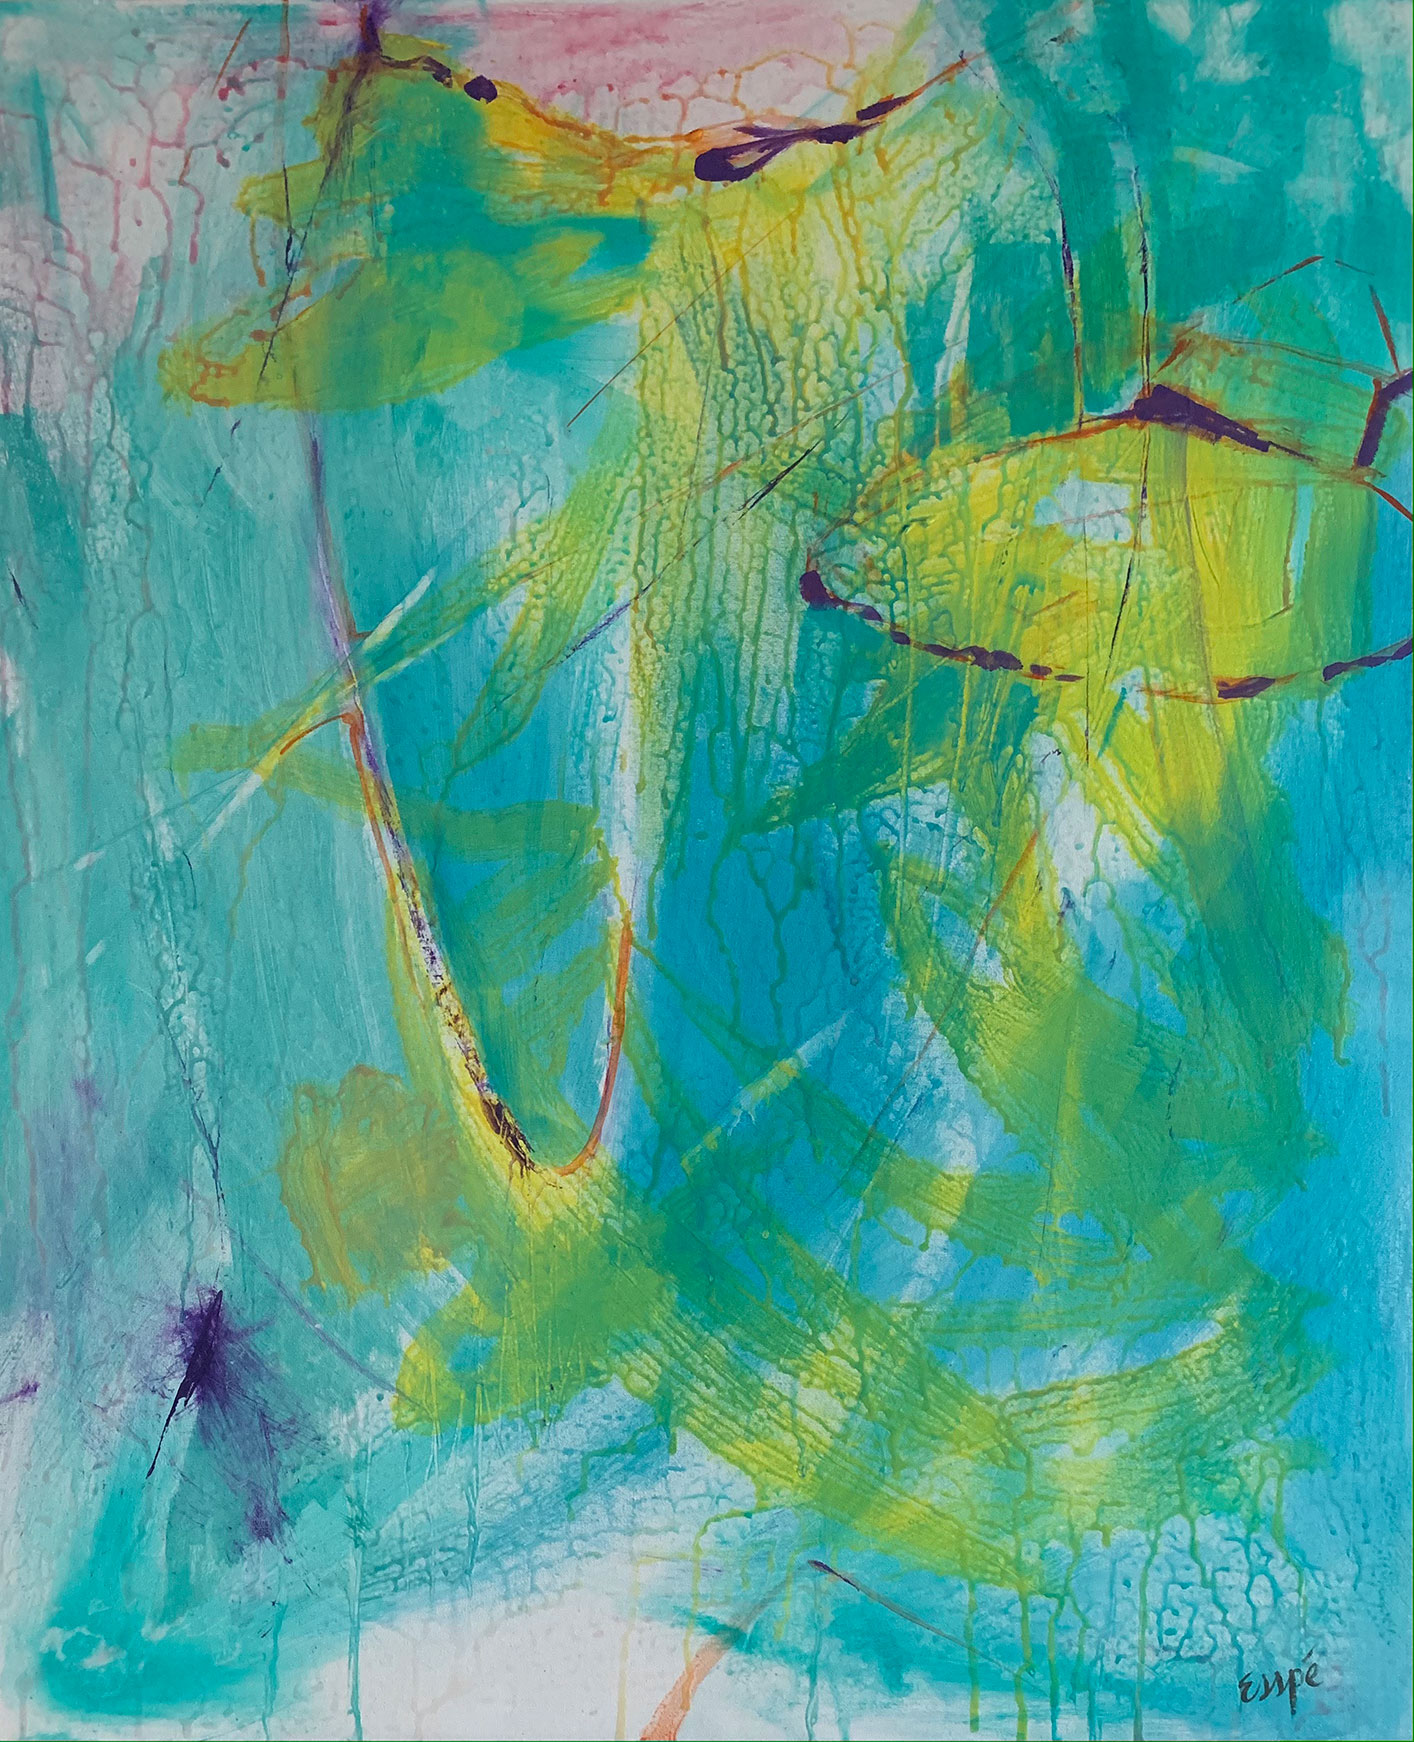 Abstract painting in teal and yellow.